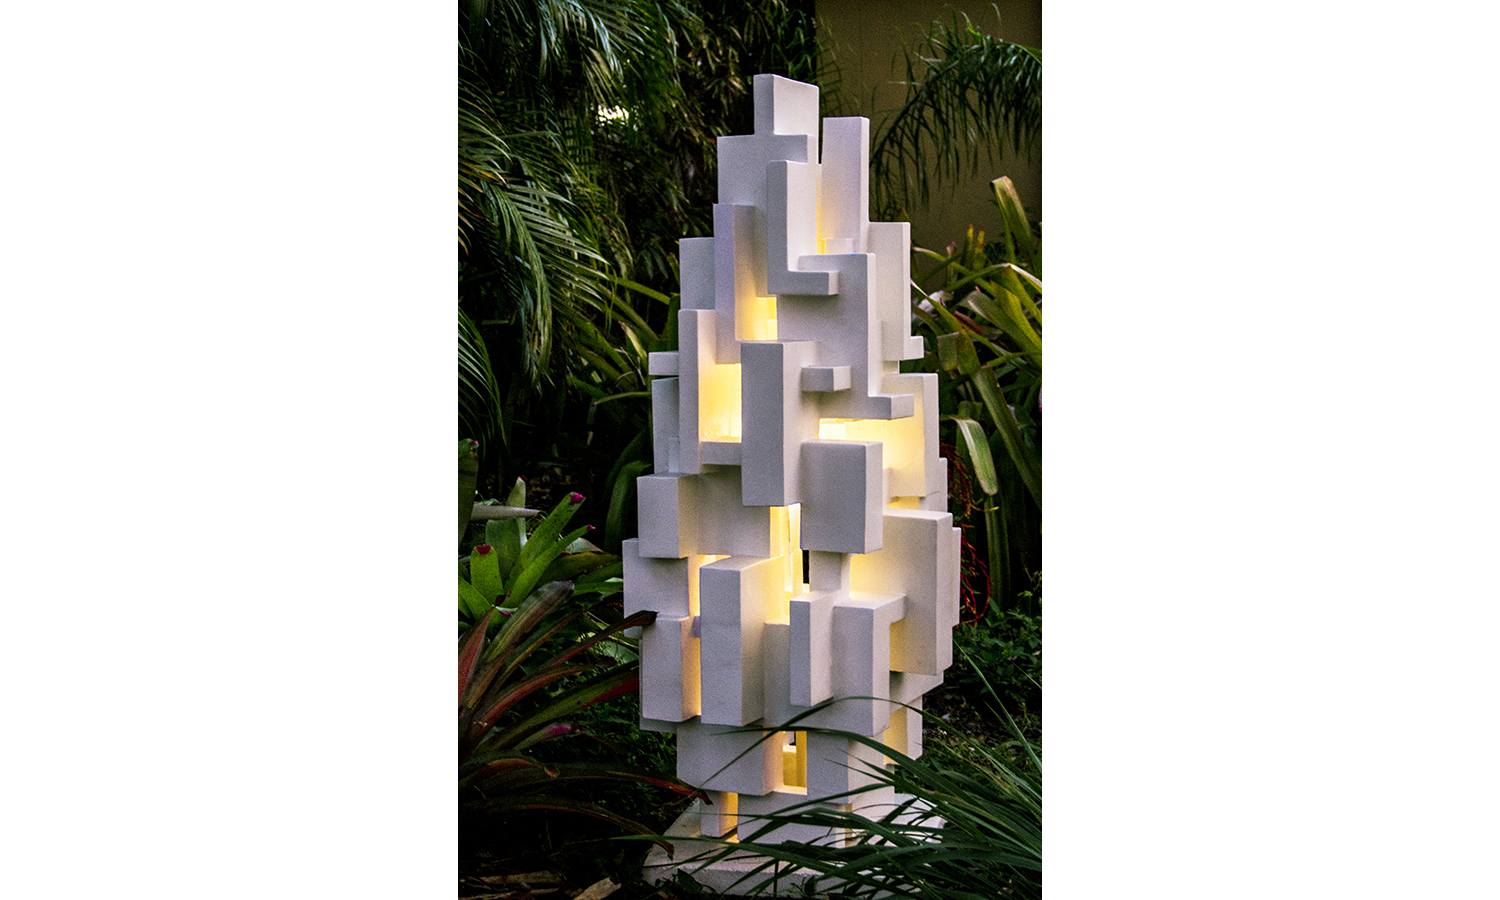 GOTHAM OUTDOOR LIGHT SCULPTURE in situ, 2018